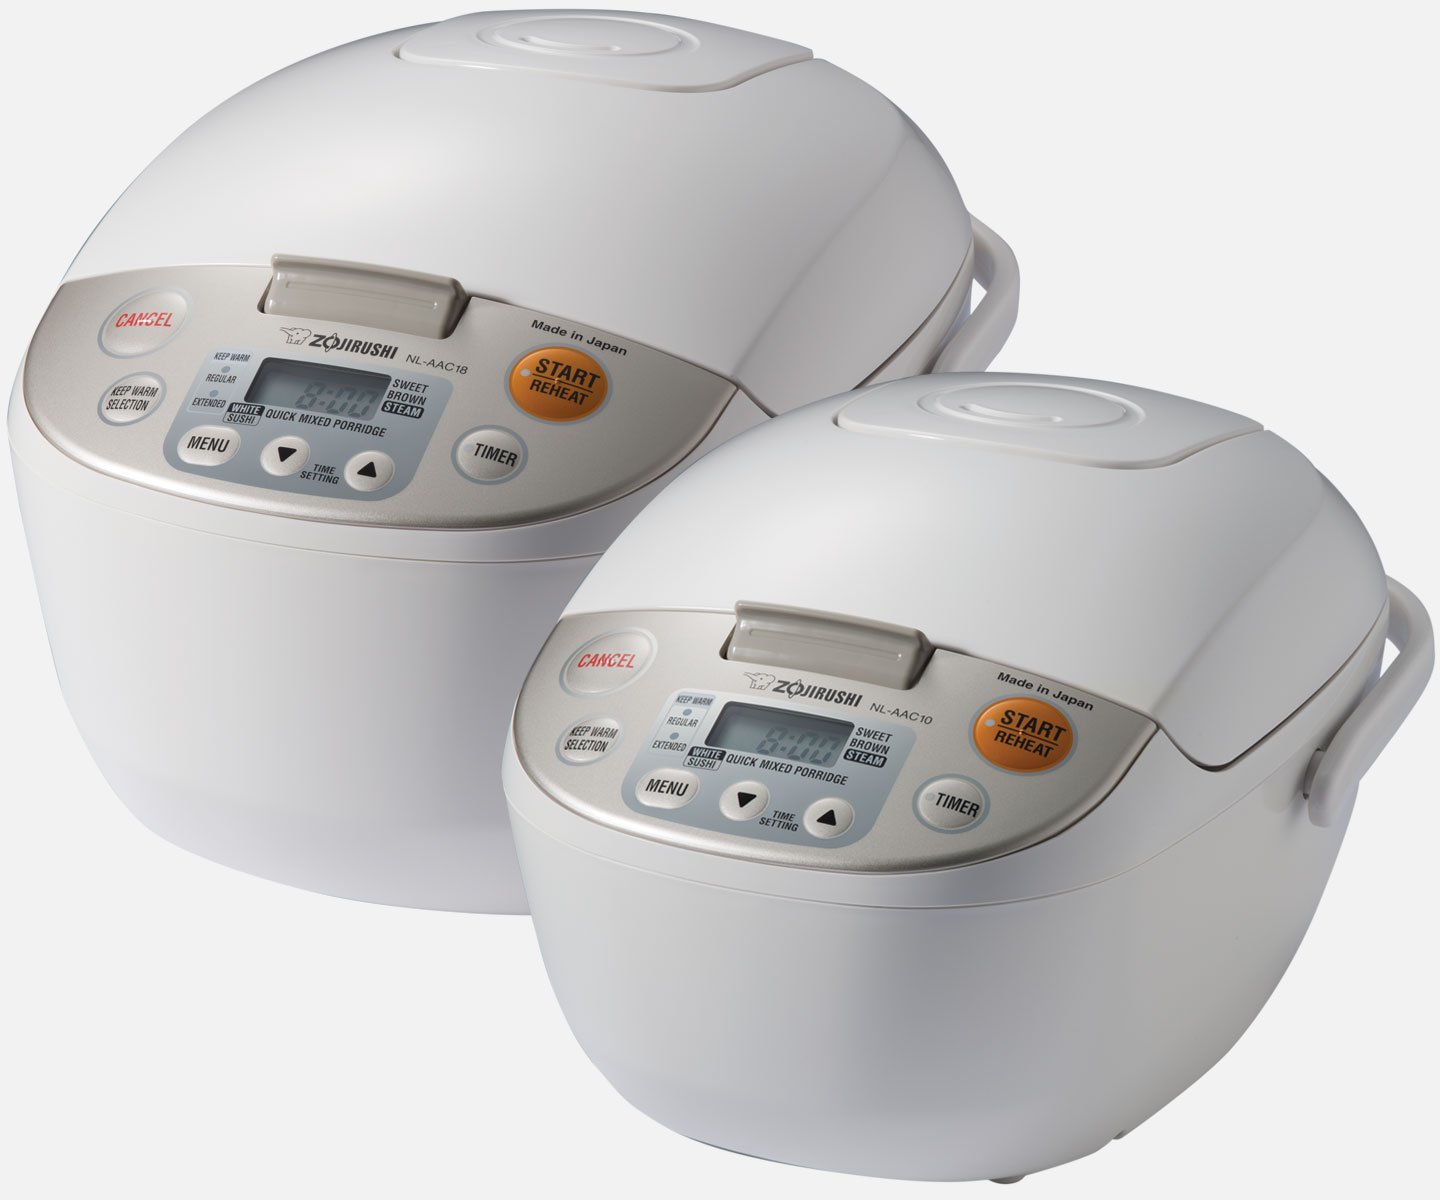 fuzzy logic rice cooker instructions